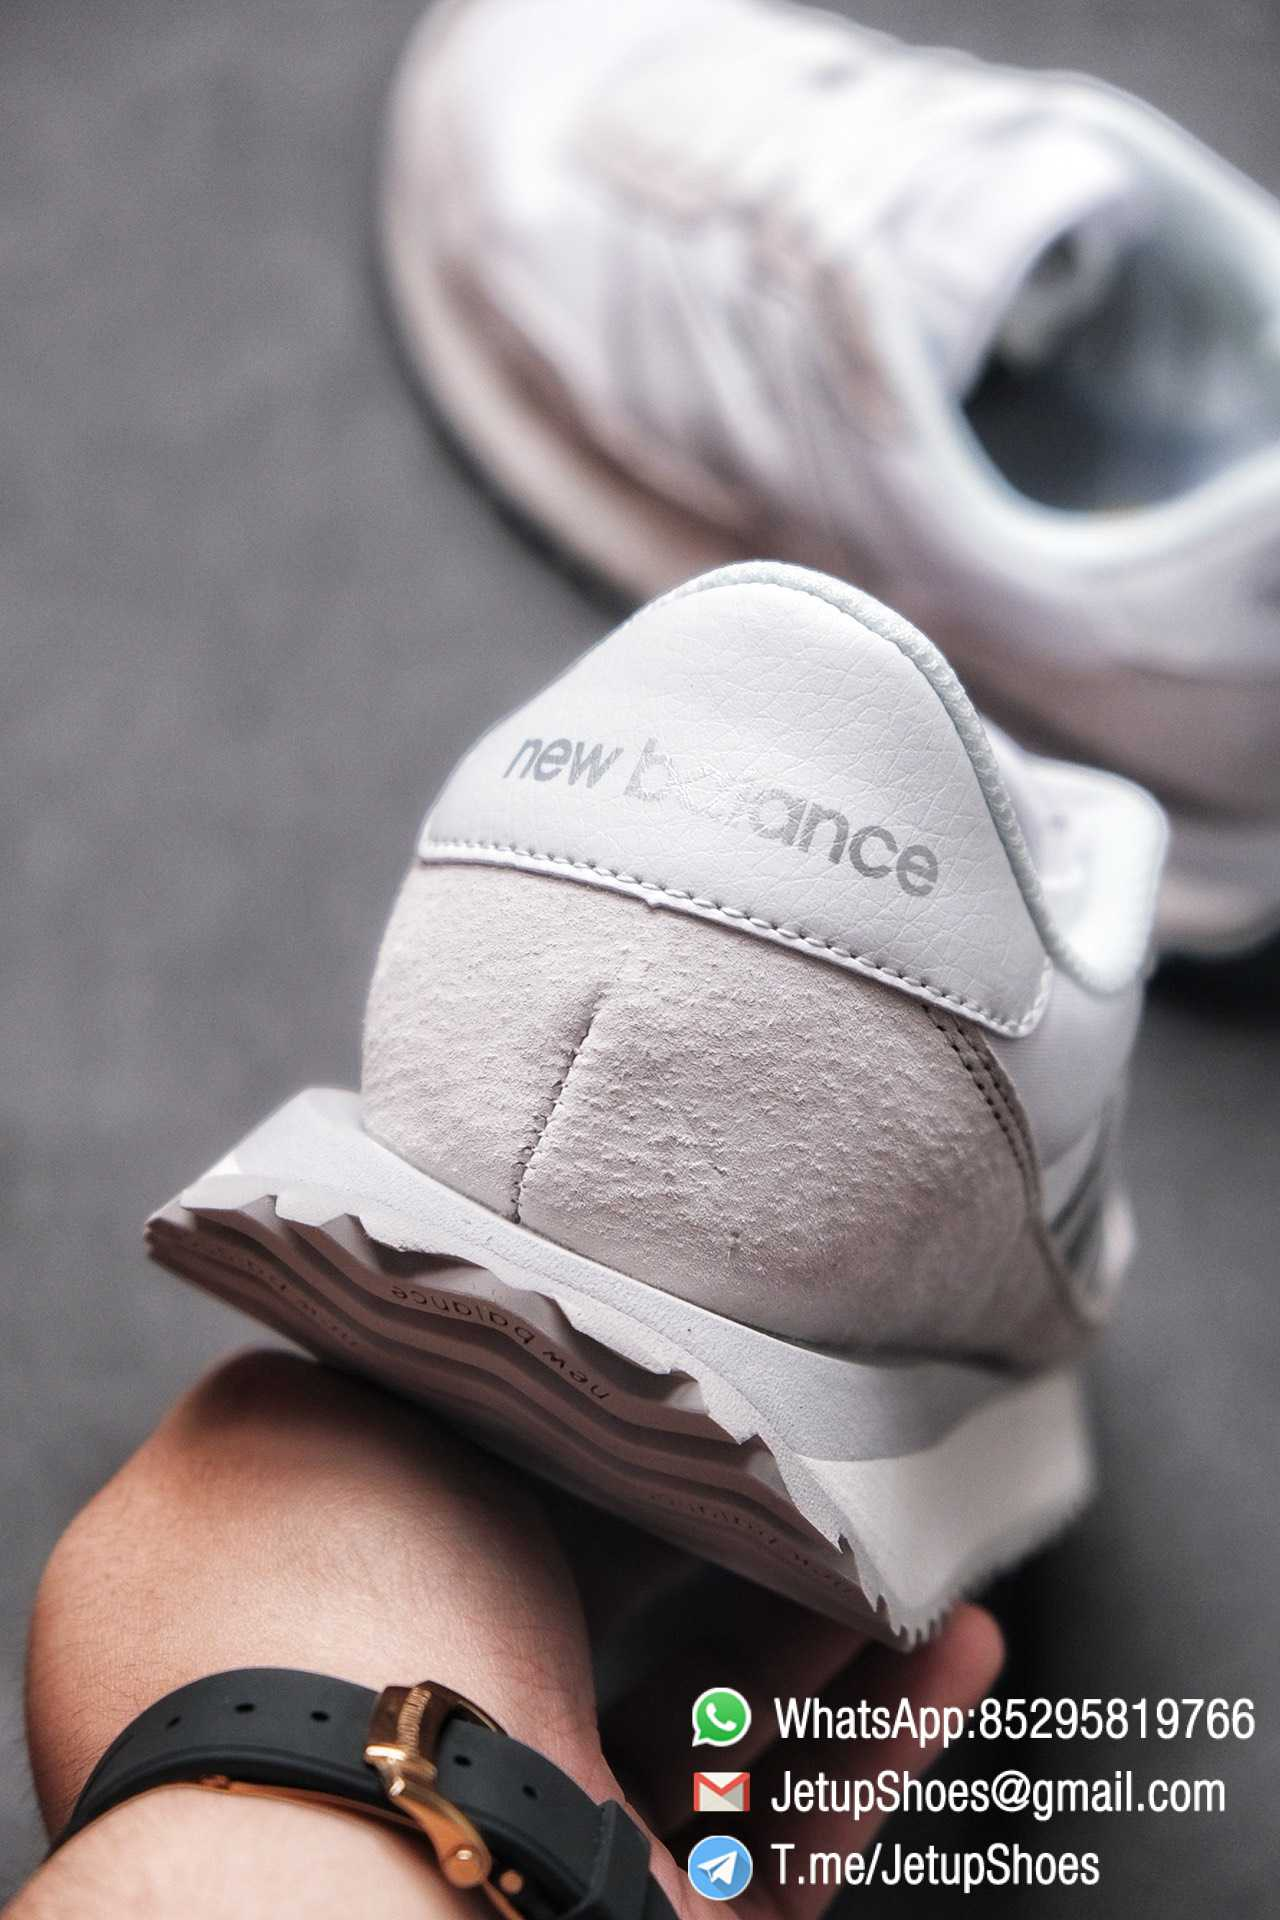 Best Replica 2021 New Balance 237 White Light Grey SKU MS237NW1 High Quality Running Sneakers 08